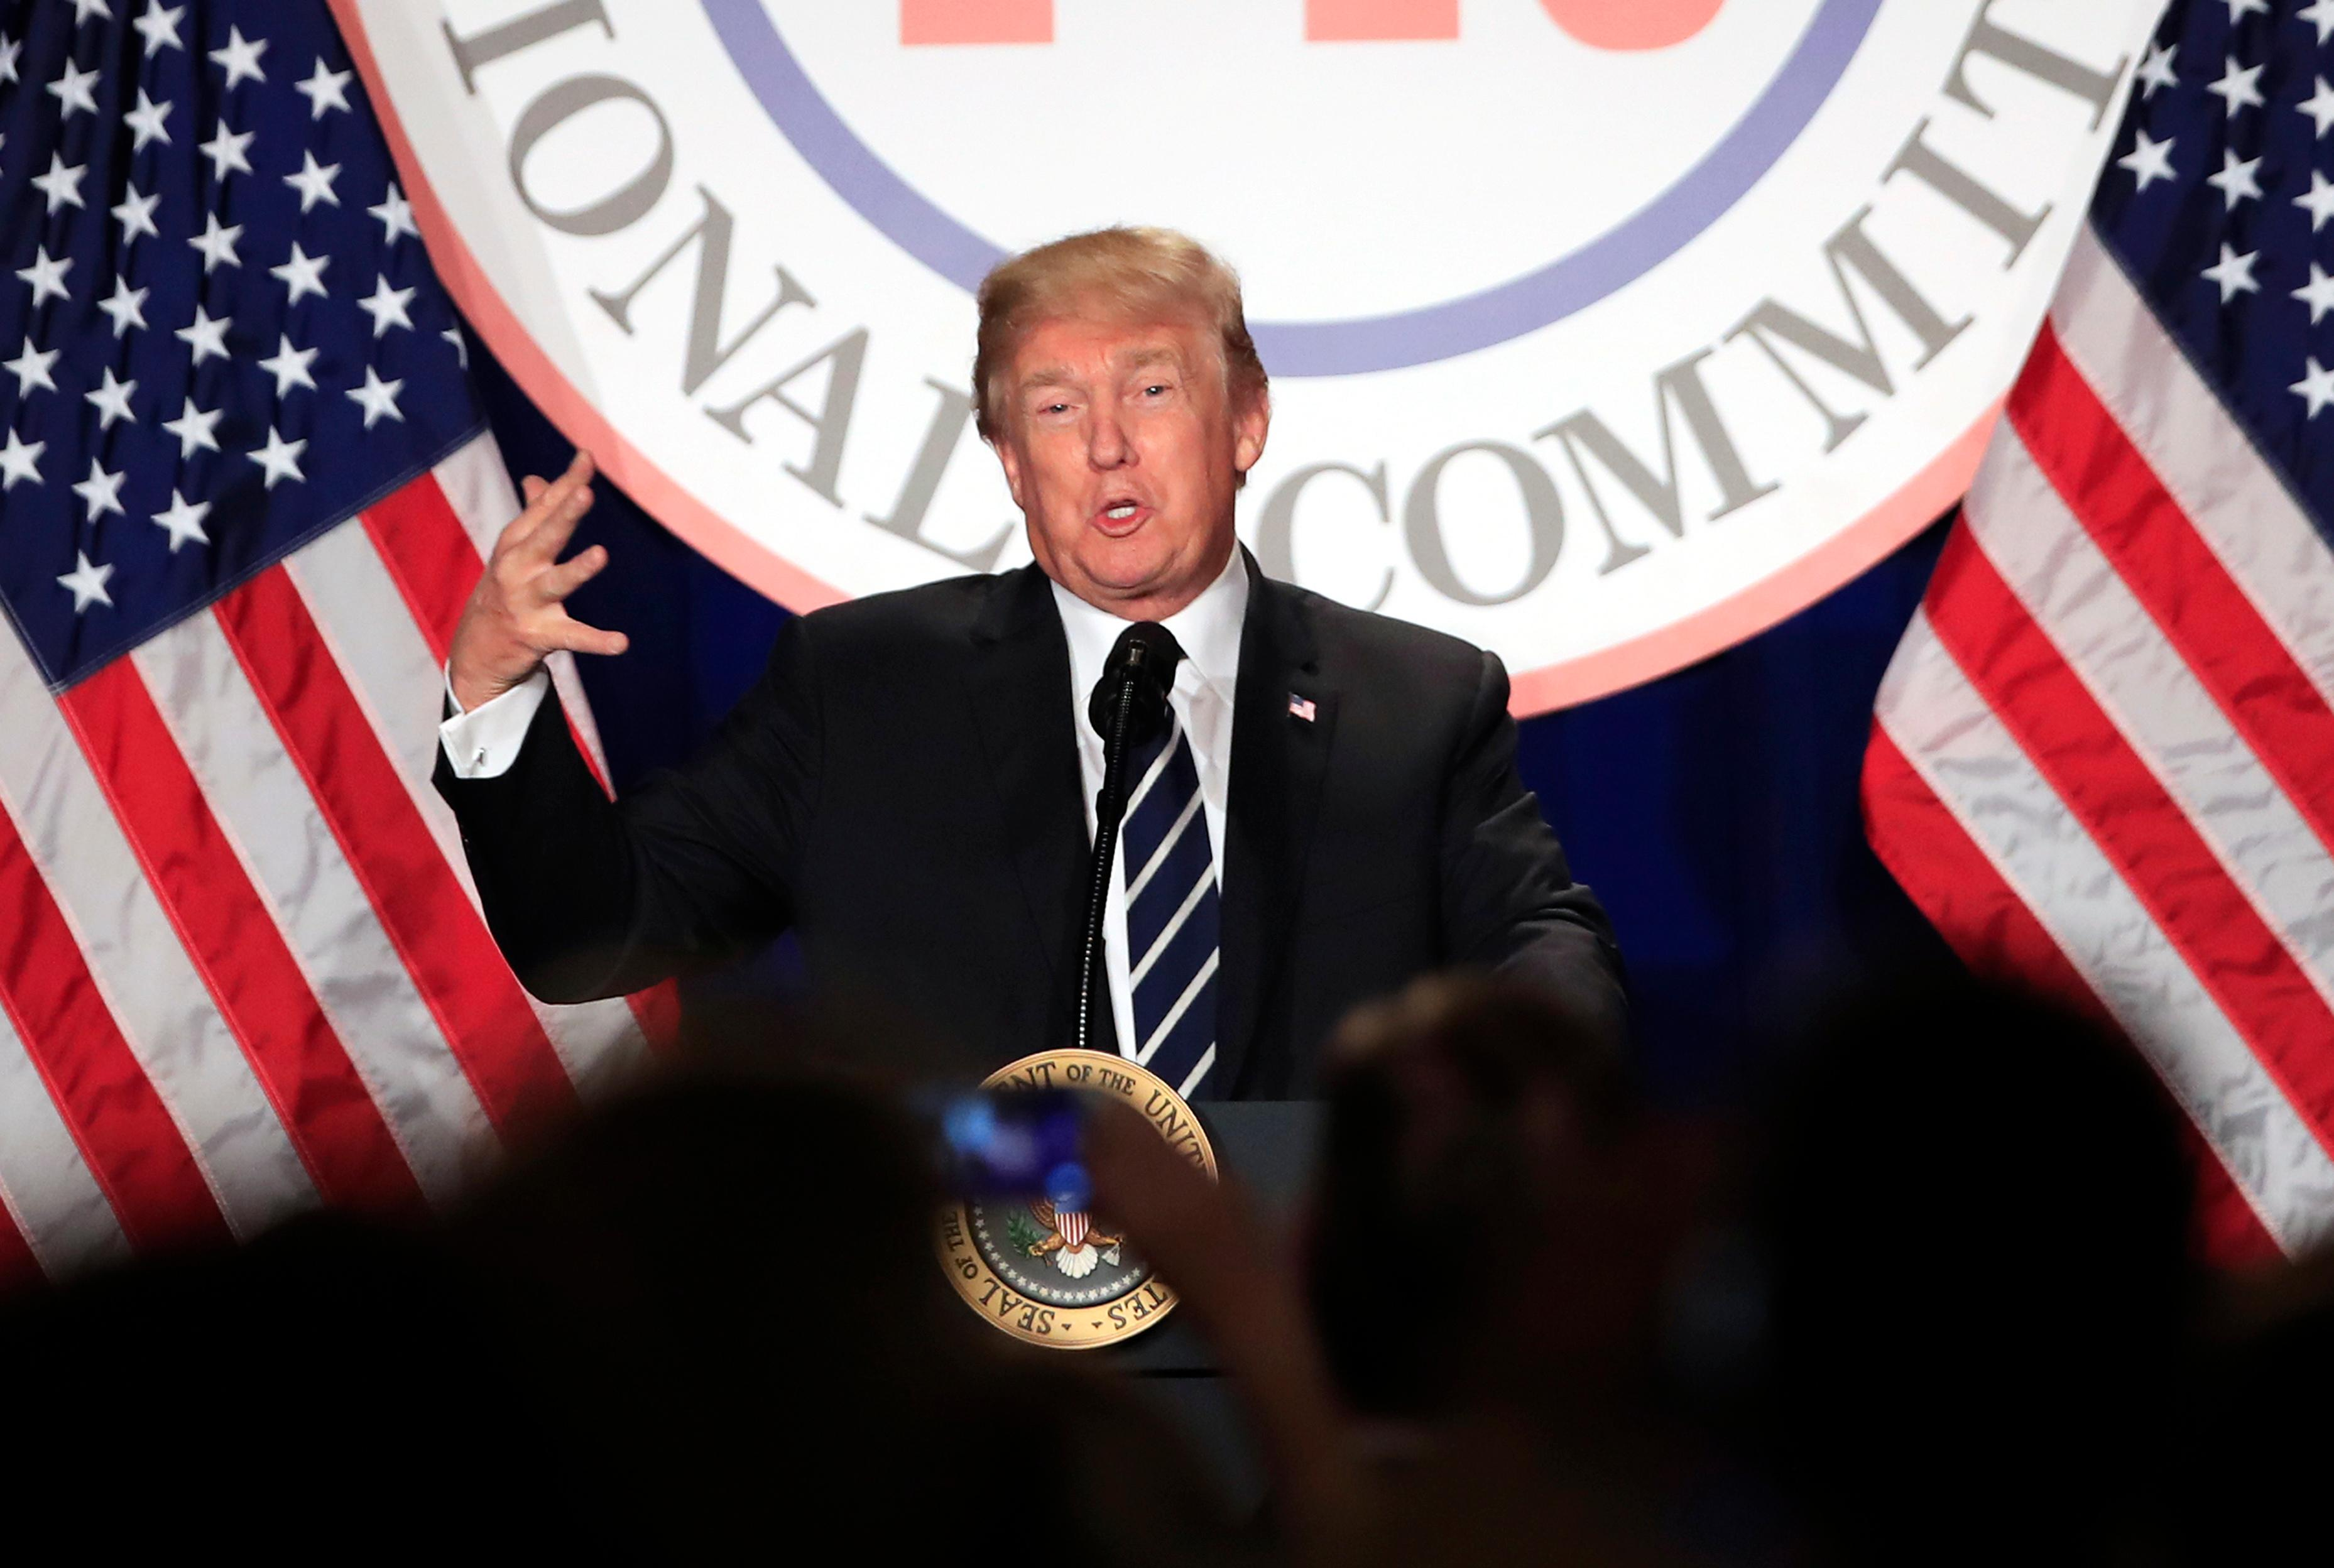 President Donald Trump speaks at the Republican National Committee (RNC) winter meeting in Washington, Thursday, Feb. 1, 2018. (AP Photo/Manuel Balce Ceneta)